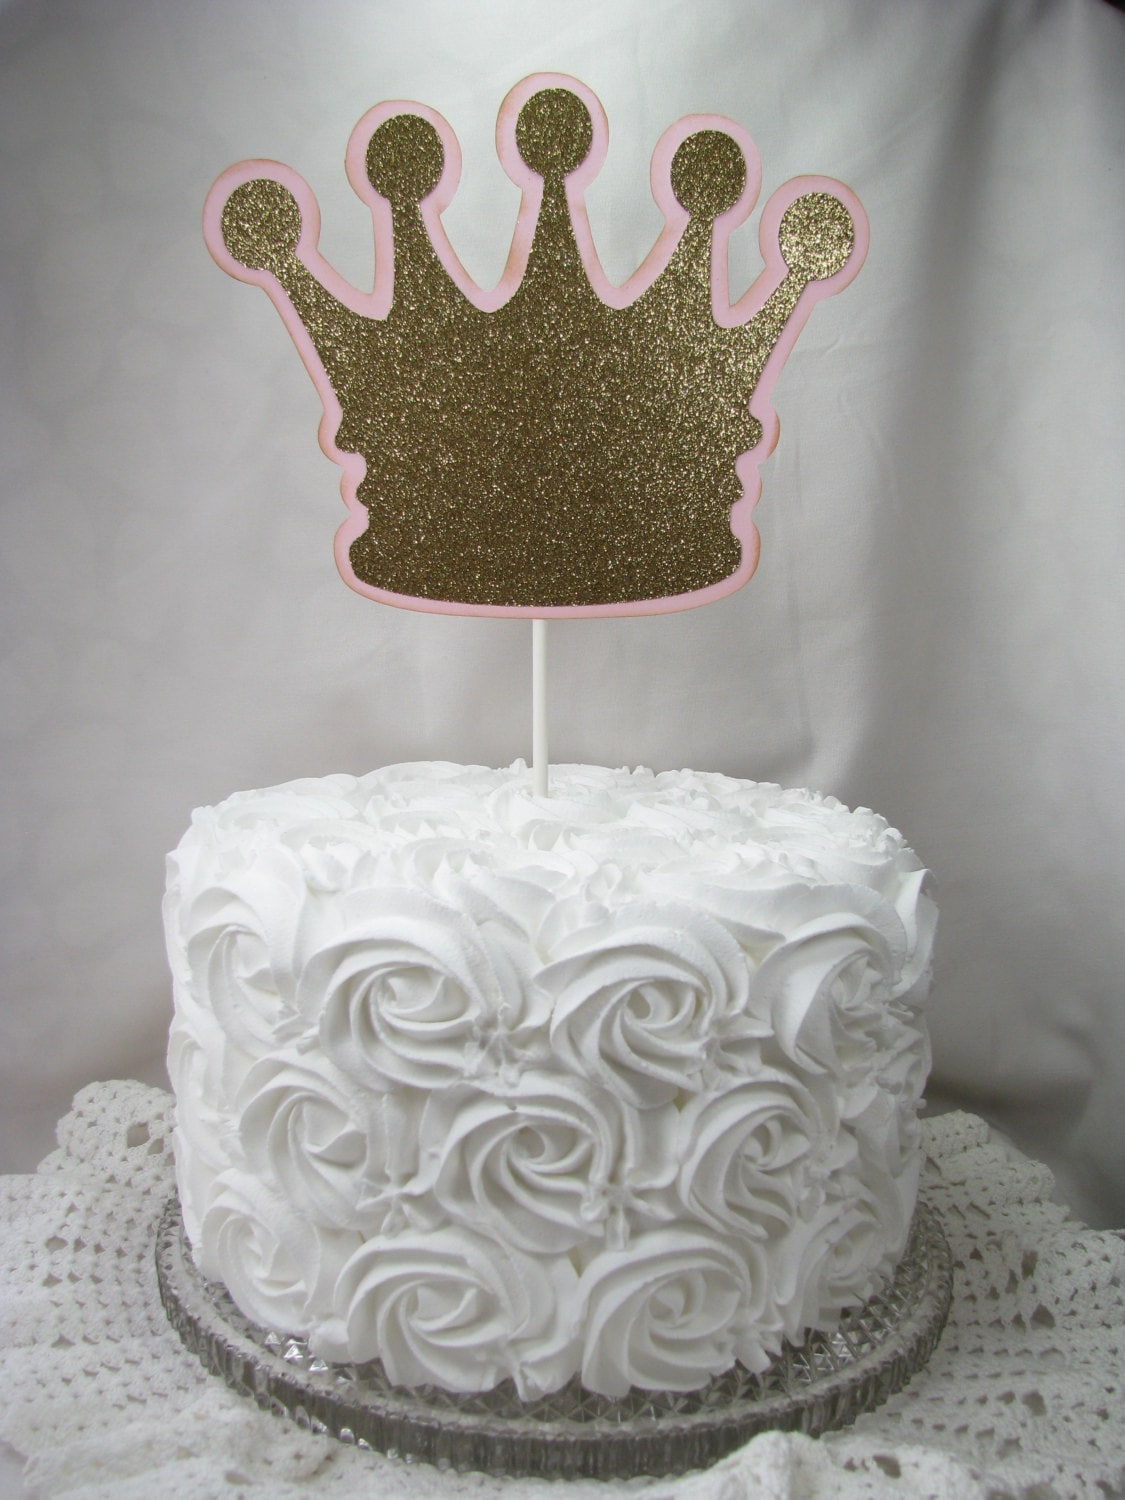 Cake Decoration Crown : Crown Cake Topper Princess Little Prince Pink and Gold